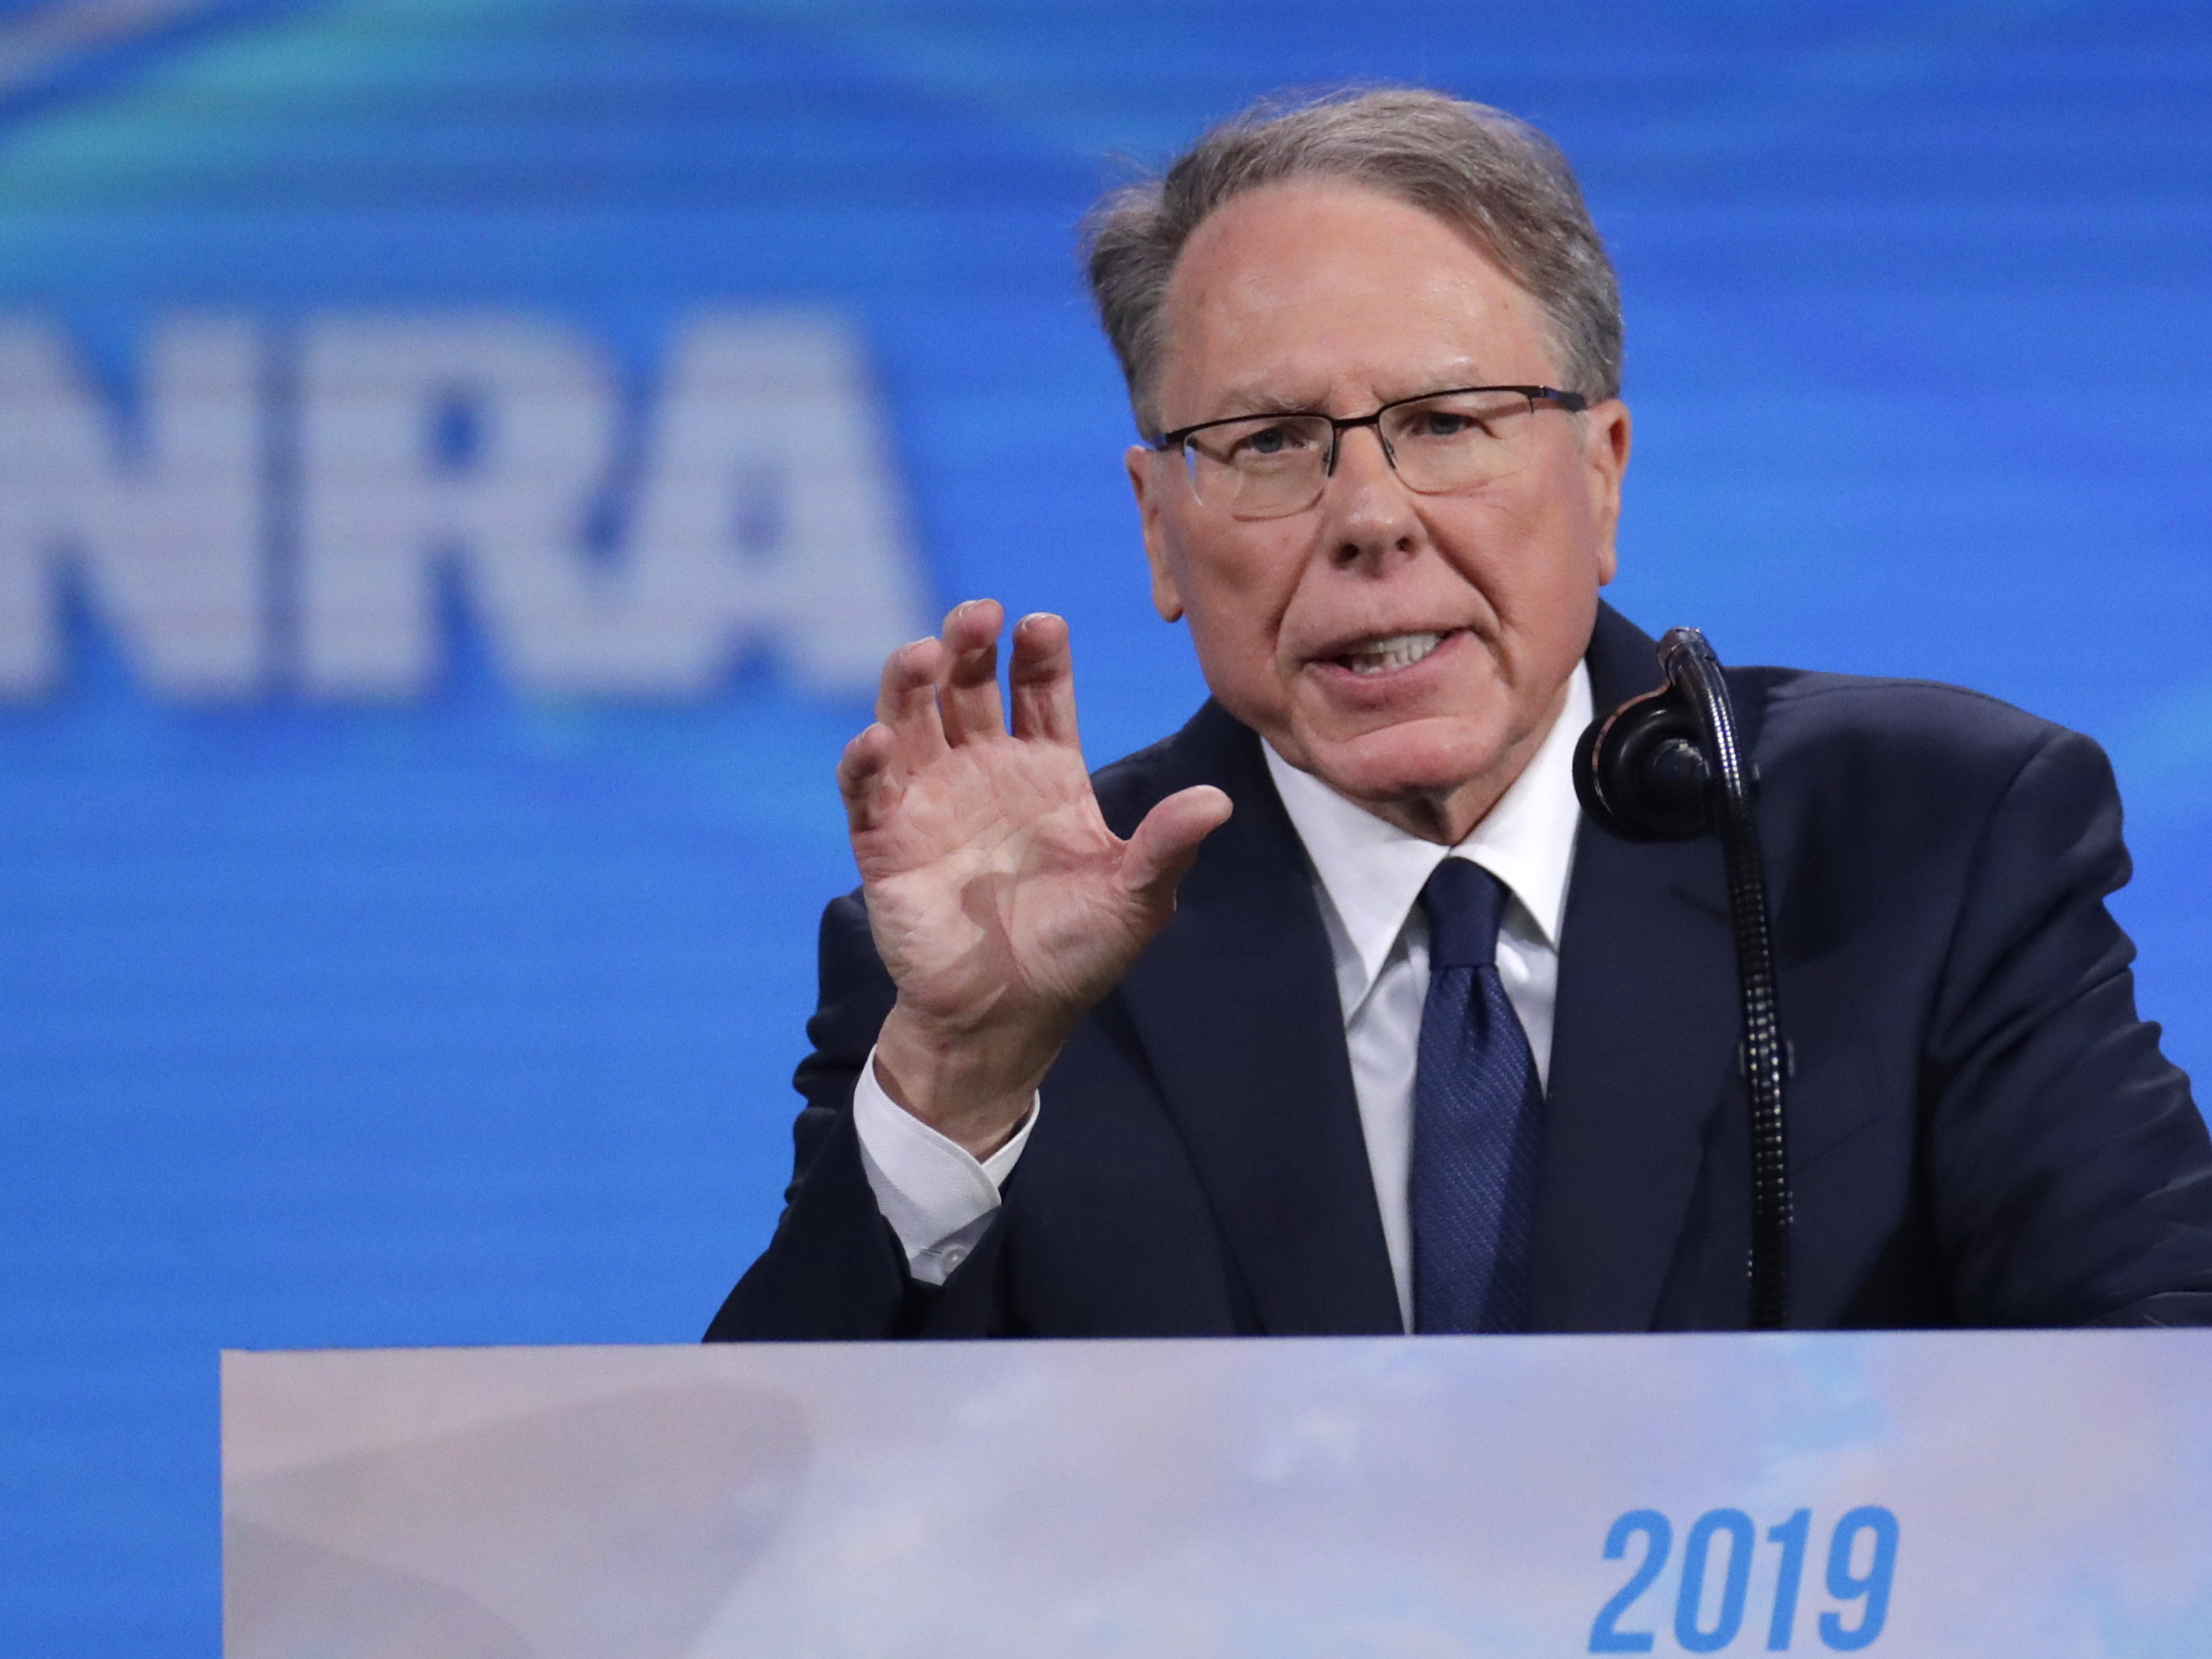 As Leaks Show Lavish NRA Spending, Former Staff Detail Poor Conditions At Nonprofit